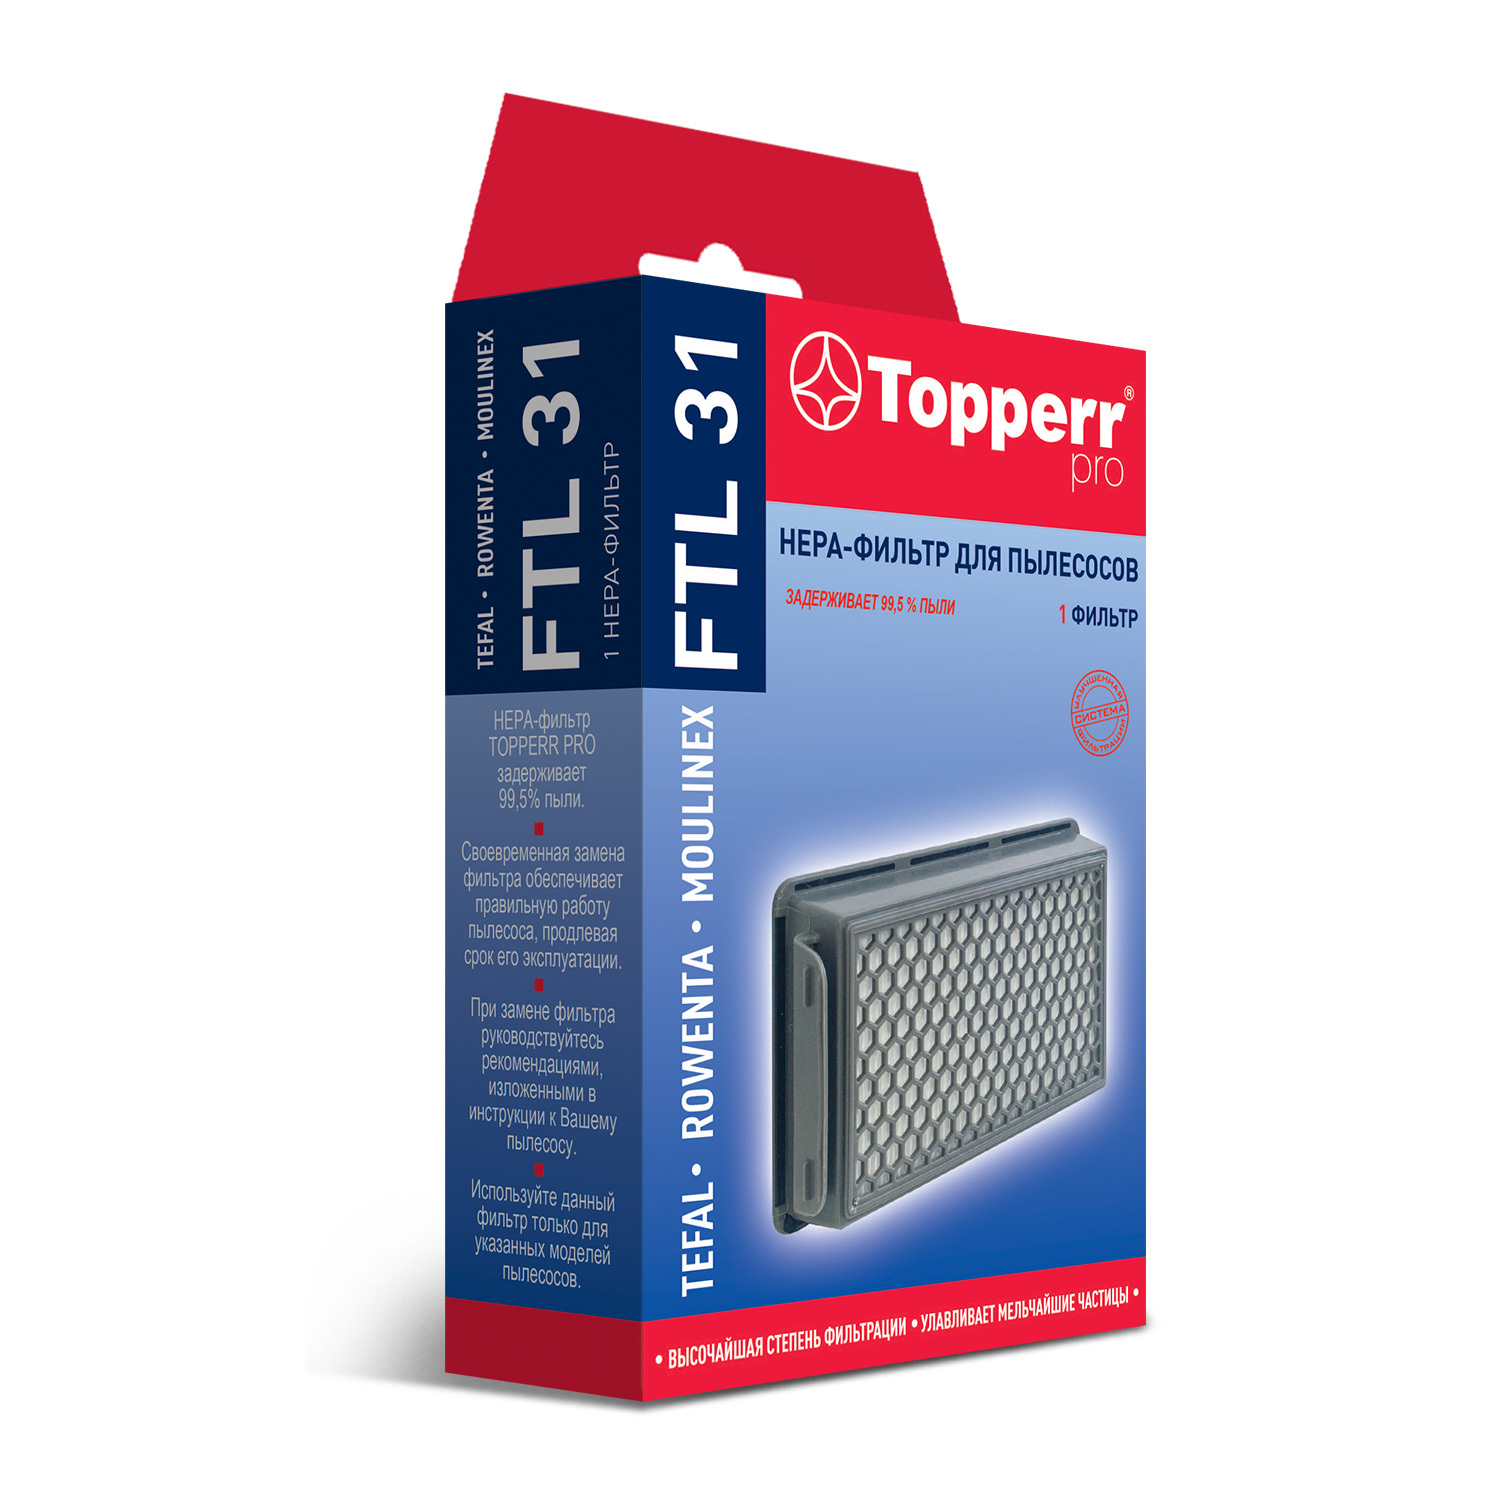 НЕРА фильтр Topperr FTL31 для пылесосов TEFAL, ROWENTA, MOULINEX серий Compact Power Cyclonic, Compact Power 3A и Powerline Extreme